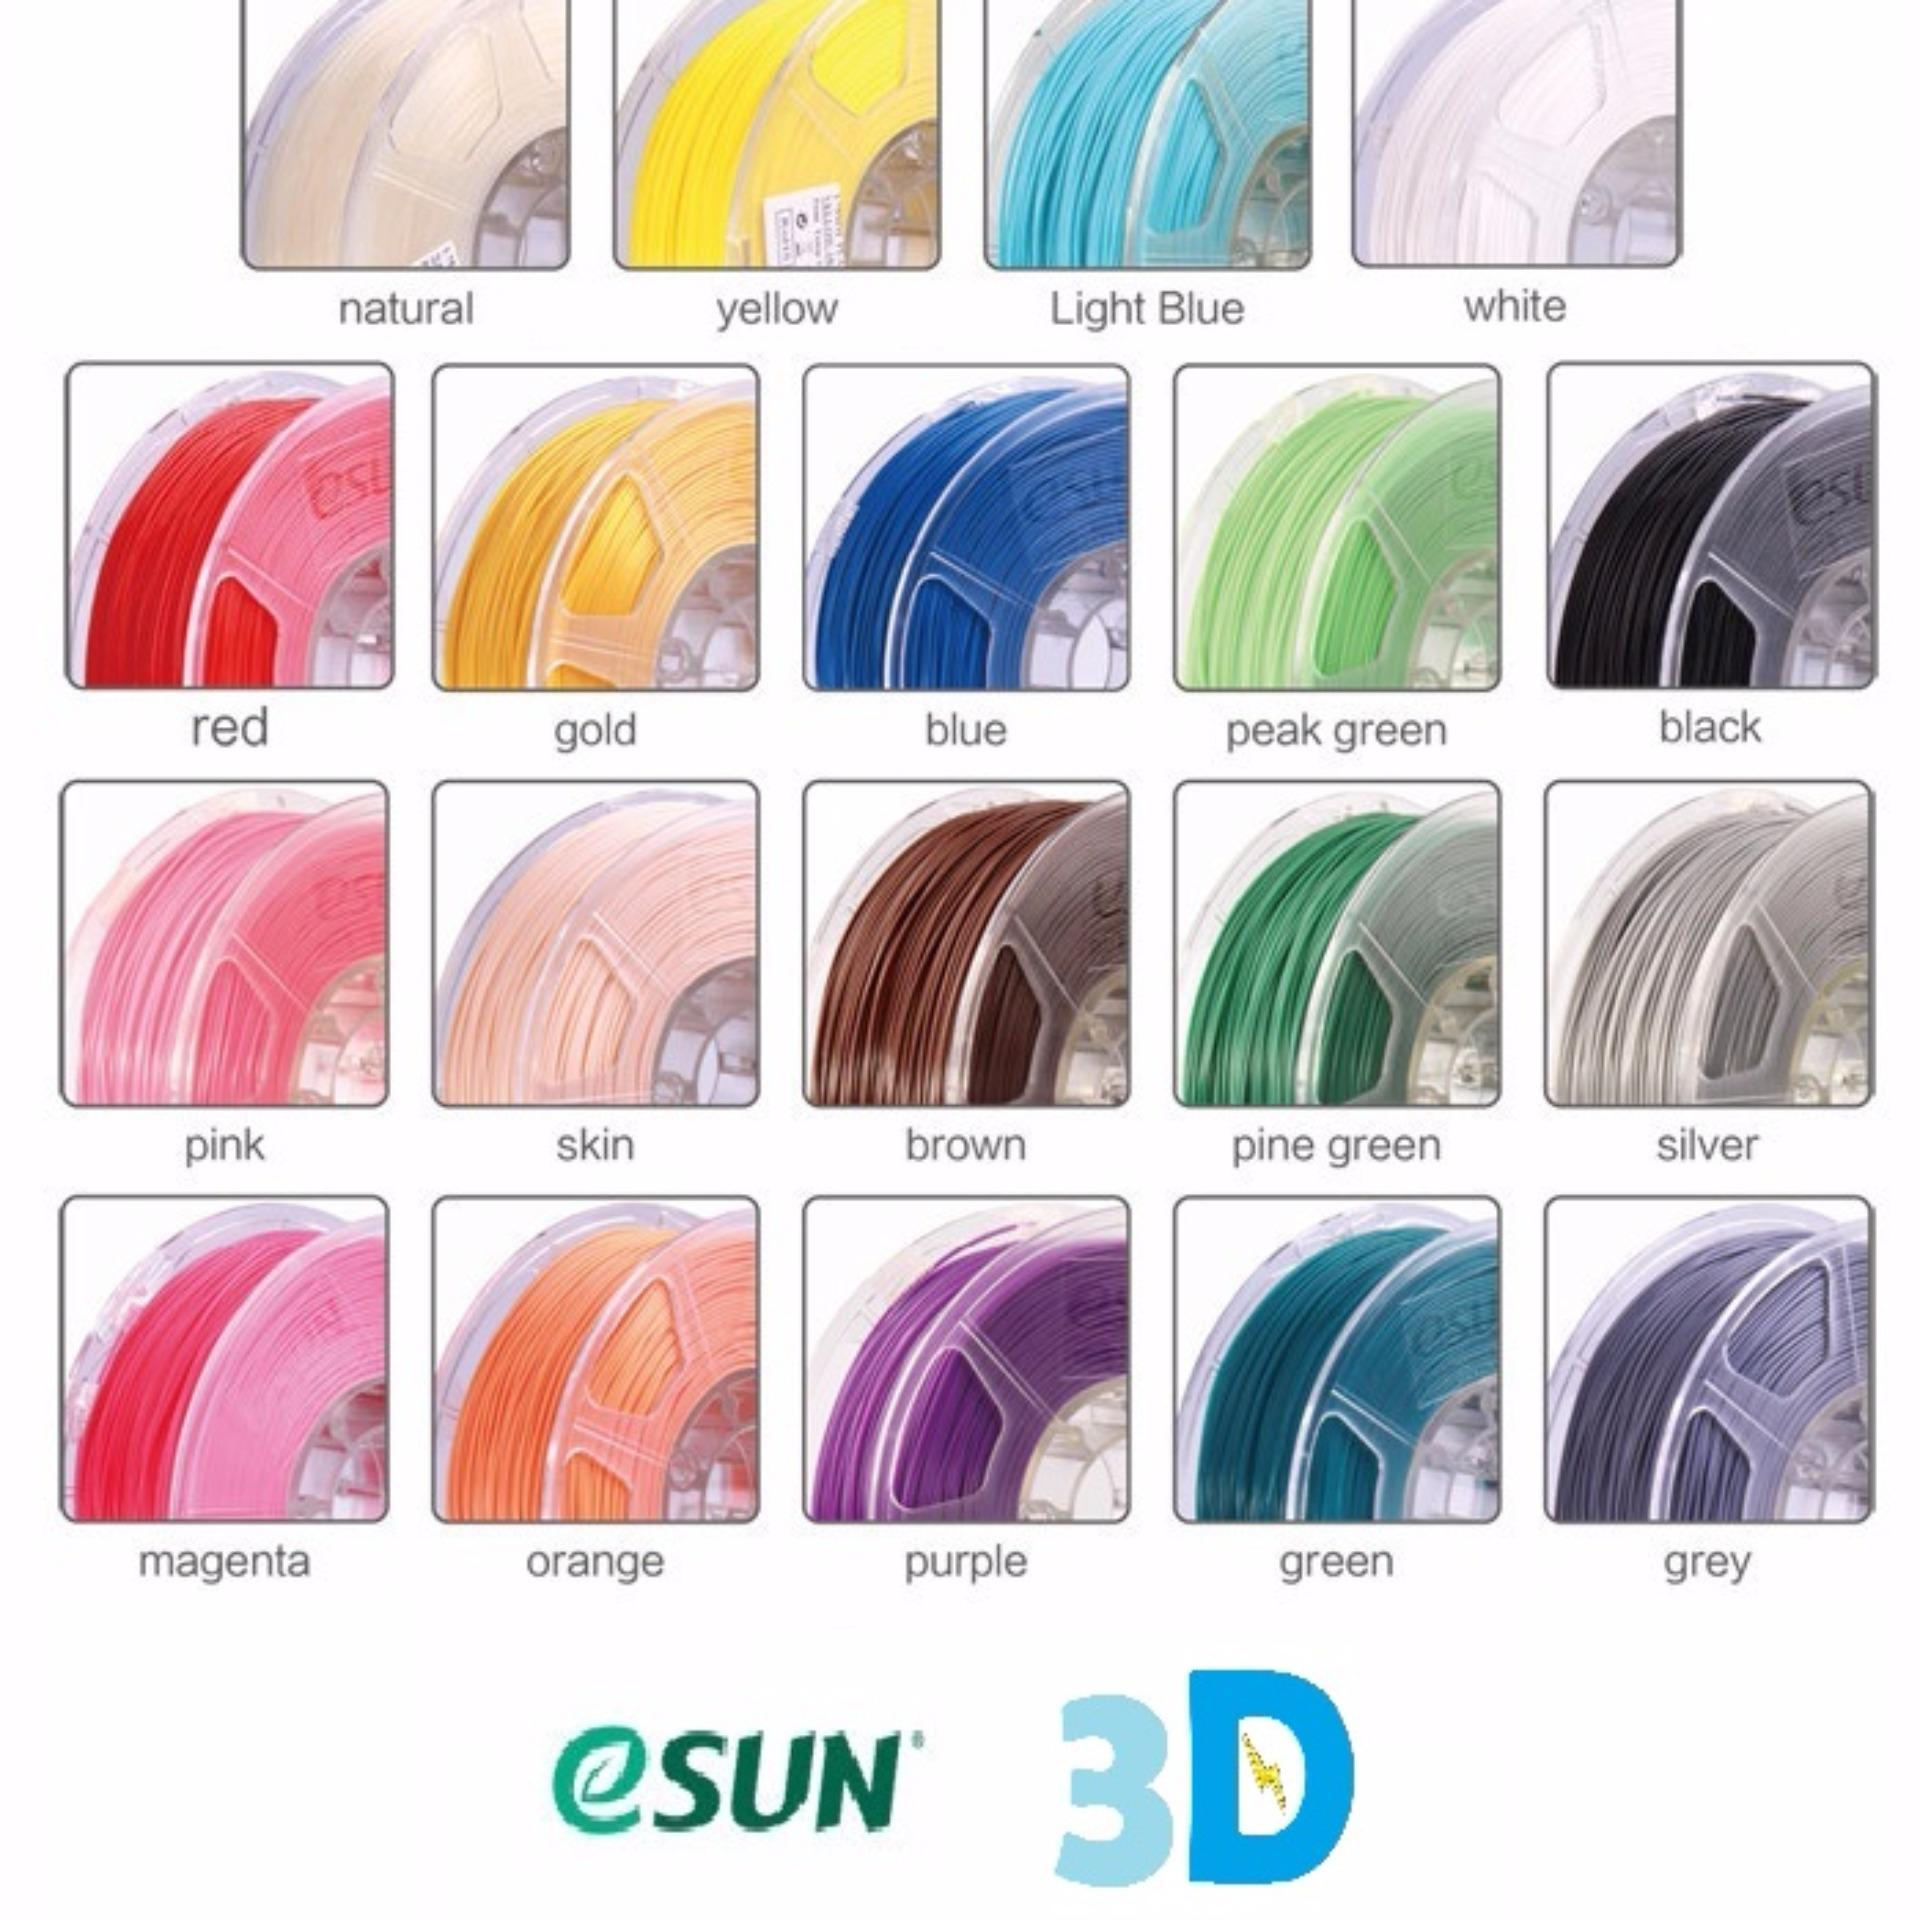 eSUN 3D Filament Terbaru Optimized PLA+ ABS+ Filament 1.75 mm